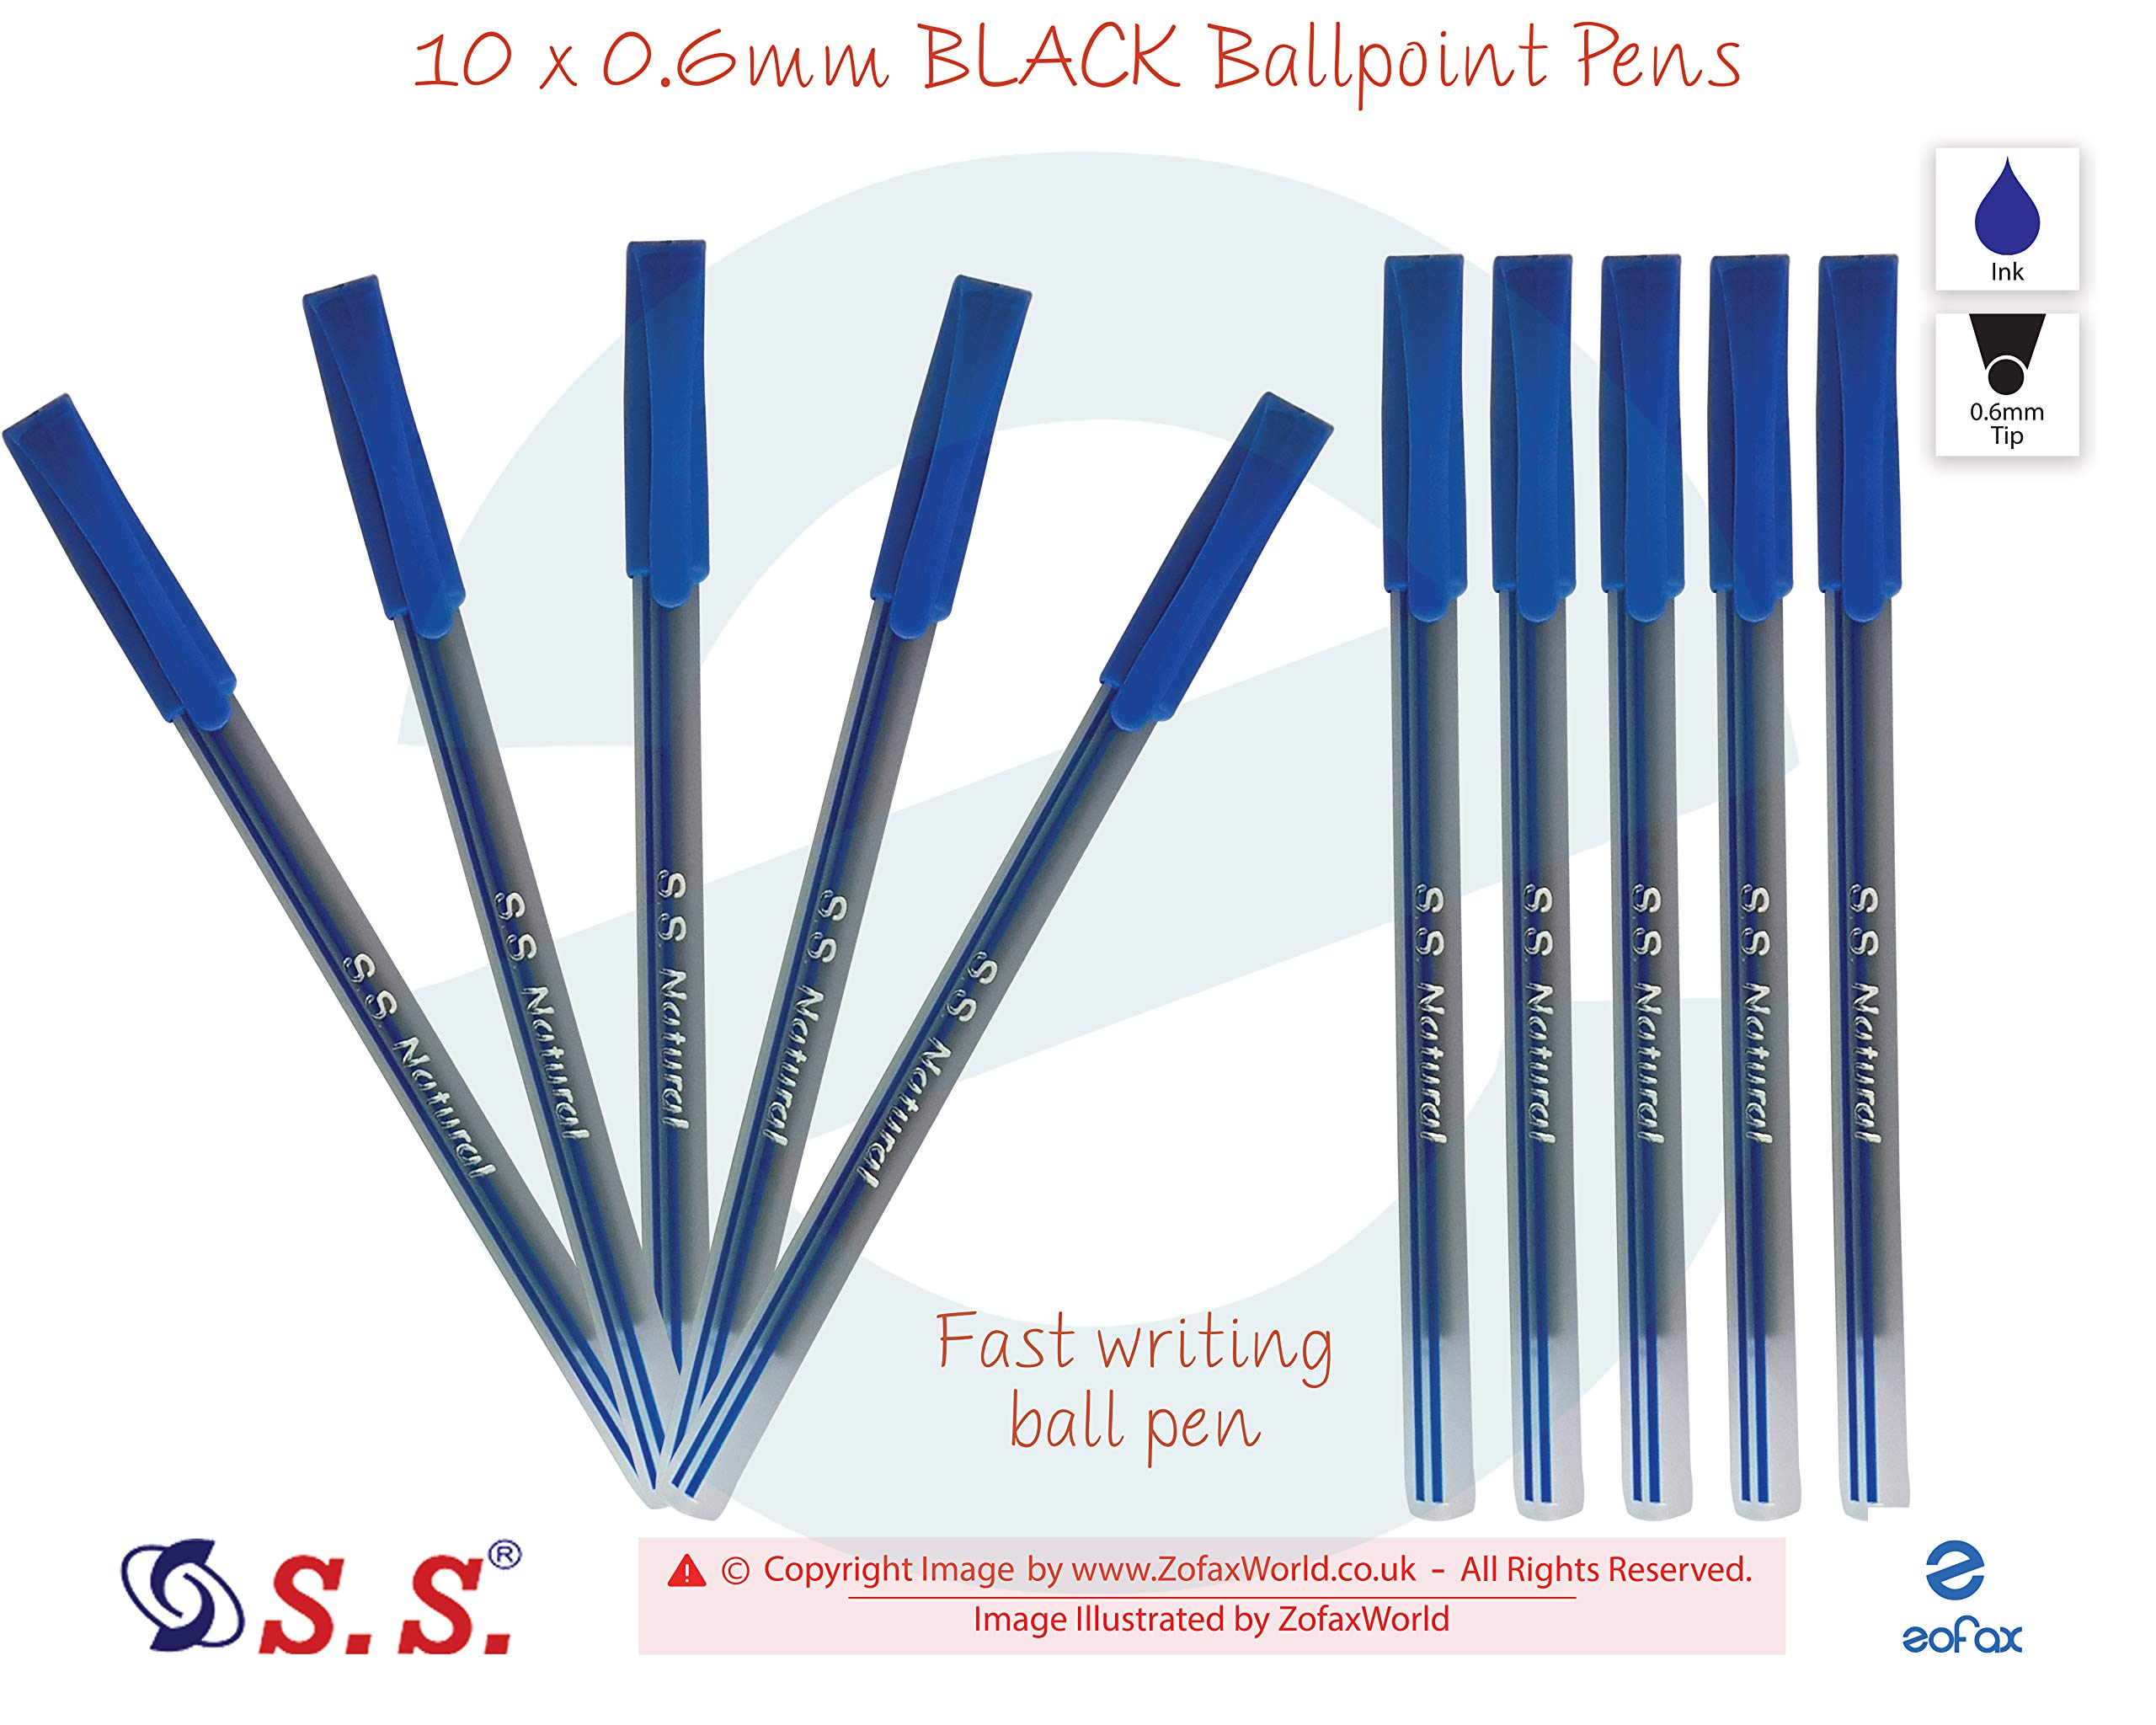 10 x 0.6mm Tip S.S. Natural BLUE Ballpoint Pens Smooth Writing Everyday Use